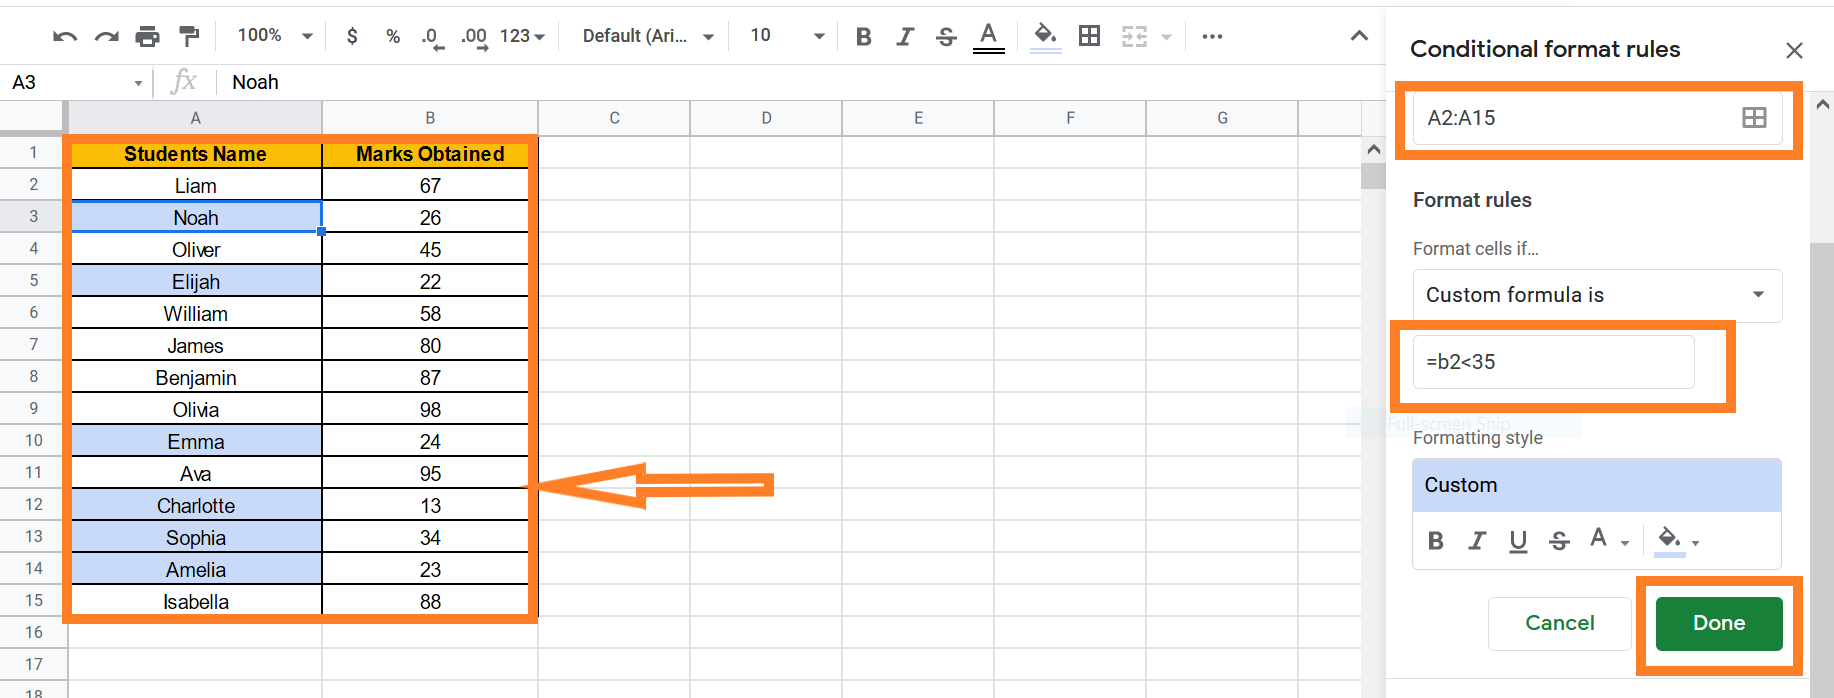 conditional formatting in Google sheets based on another cell